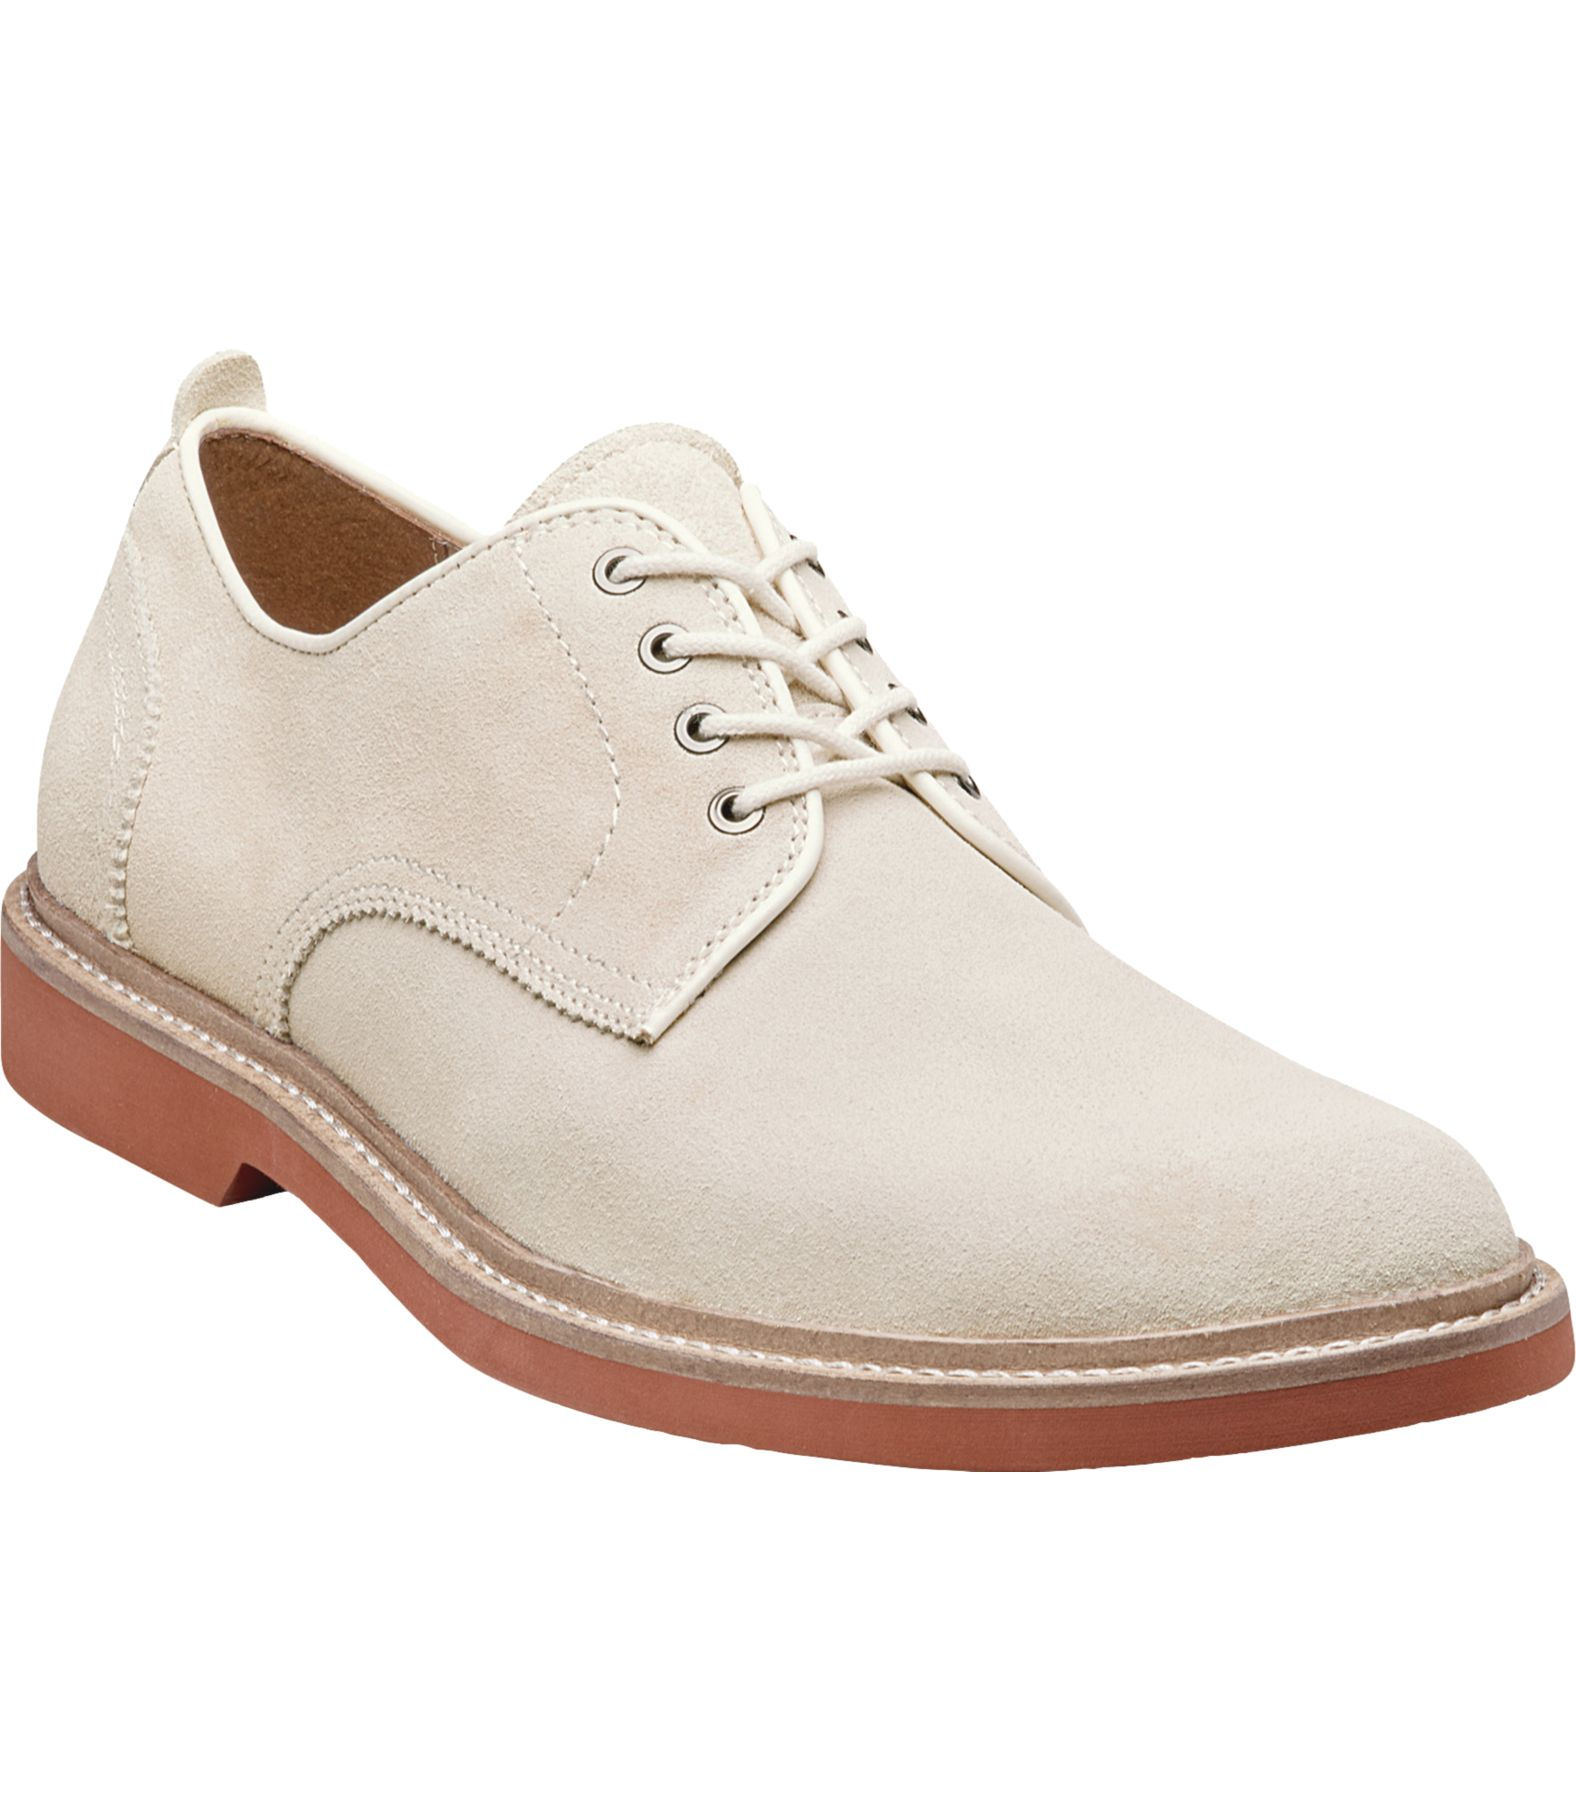 1960s Menswear Clothing & Fashion Ideas Bucktown Oxford by Florsheim Mens Shoes -  $115.00 AT vintagedancer.com